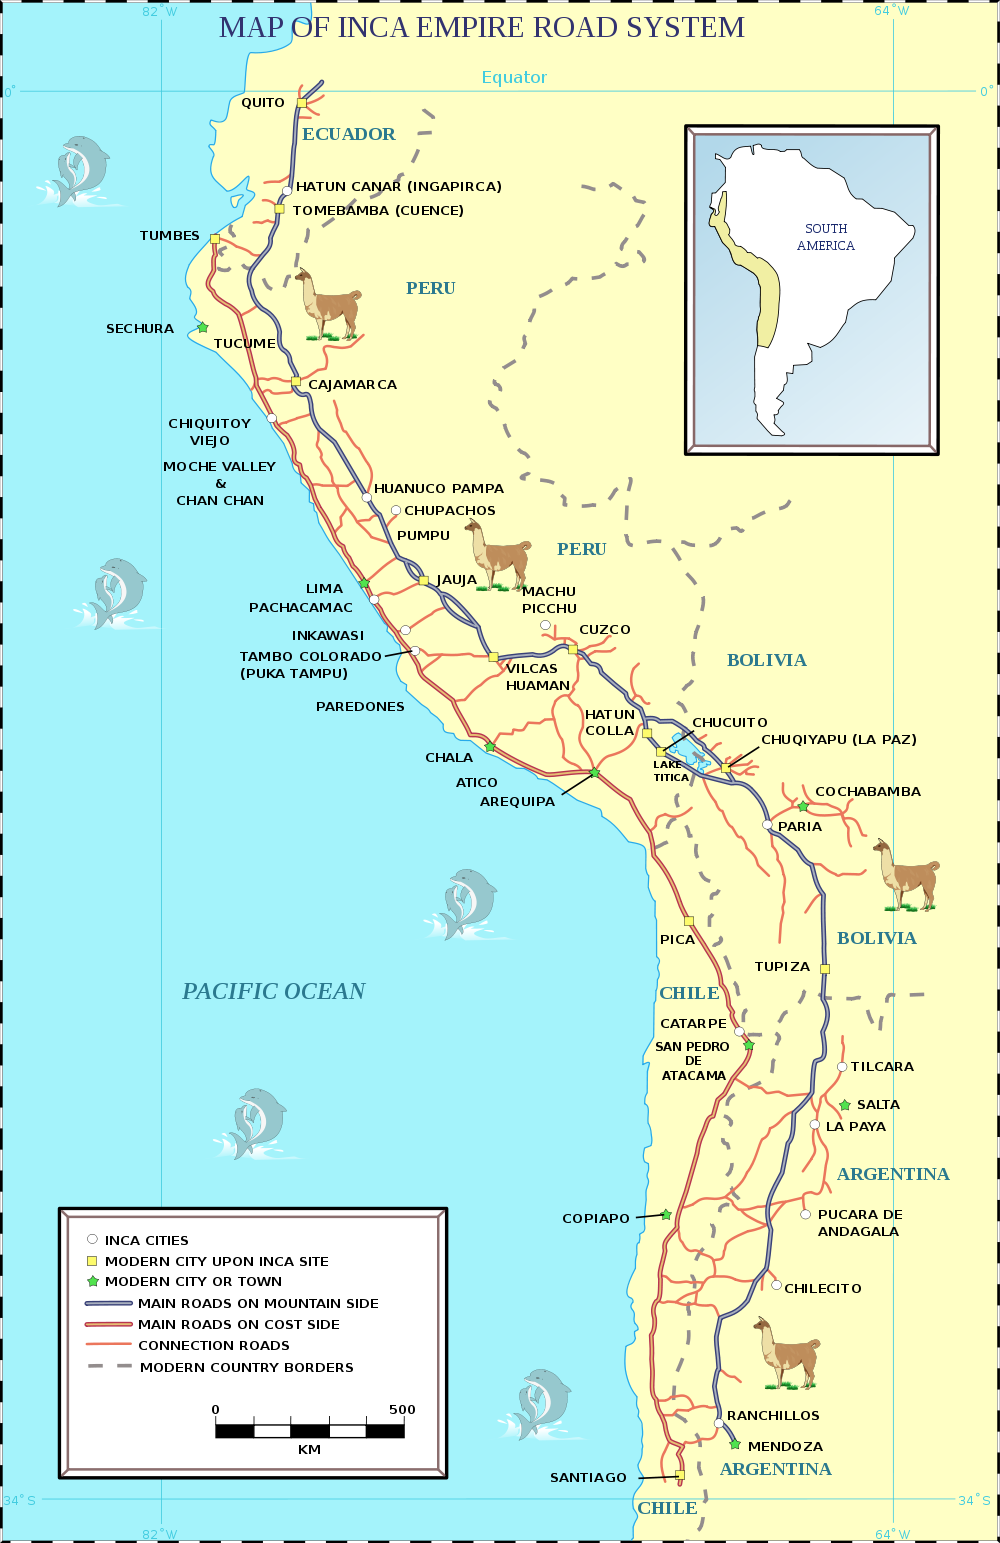 Map of the Ancient Inca Empire Road System. Mystery of ... Inca Empire Map Roads on greece map, inca warriors, lima map, inca city, inca buildings, inca pyramids, inca people, inca roads, chimu map, inca civilization, brazil map, tenochtitlan map, inca houses, inca trail, mesoamerica map, inca food, china map, inca crops, inca art, inca flag,